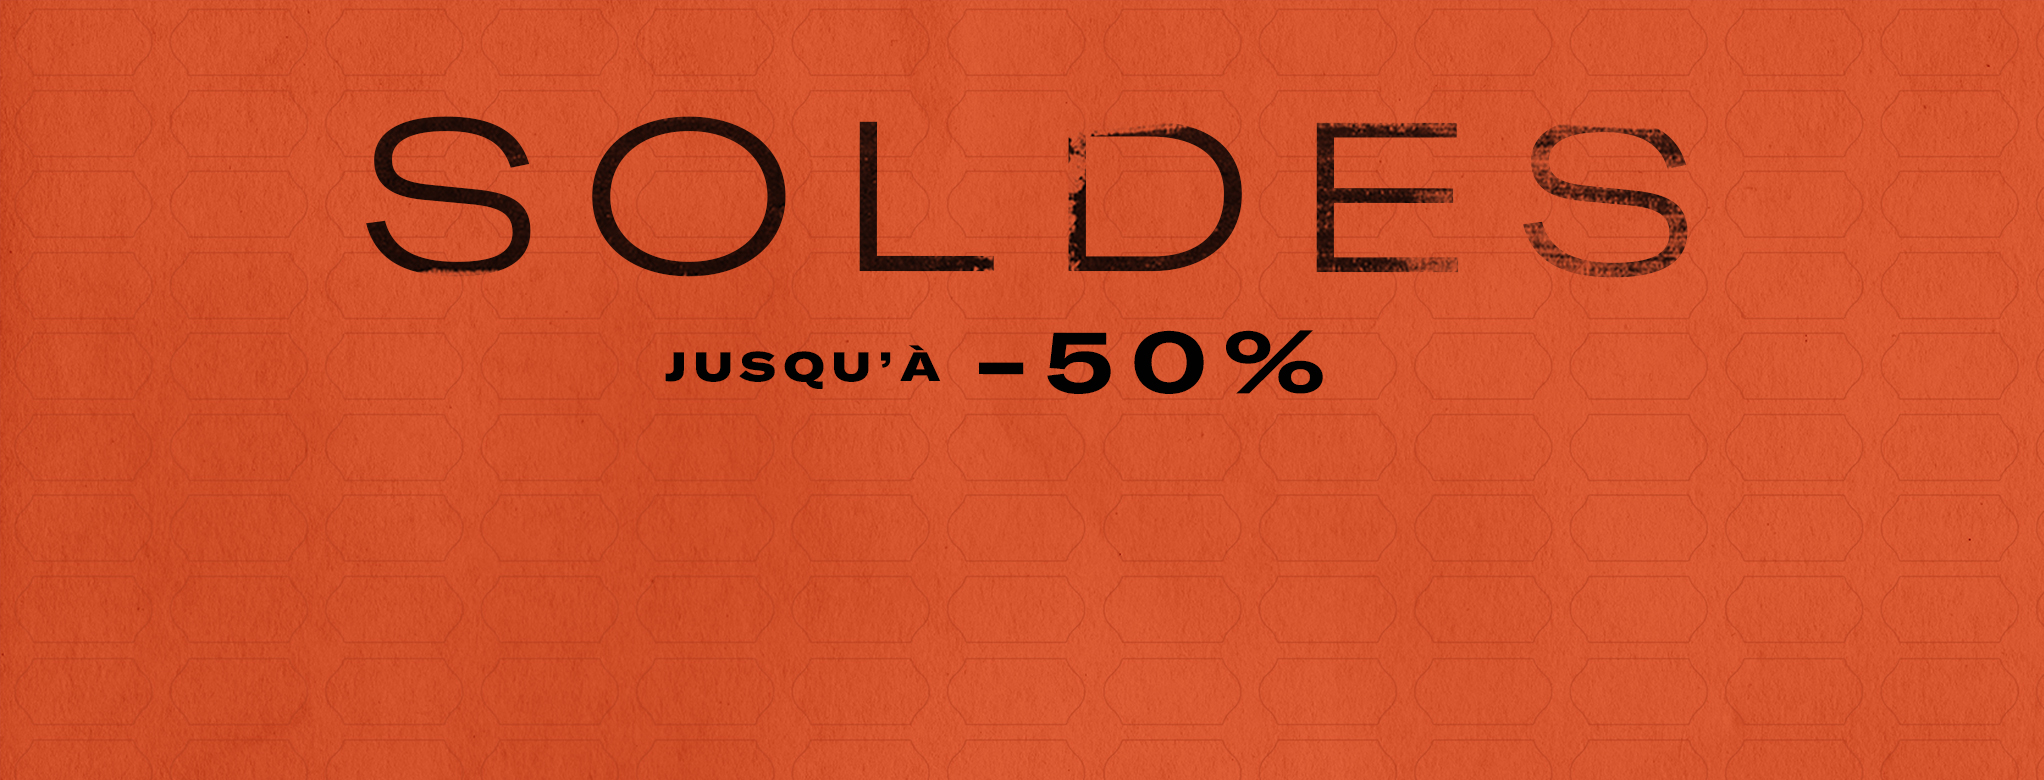 SS20 sale up to 50% off